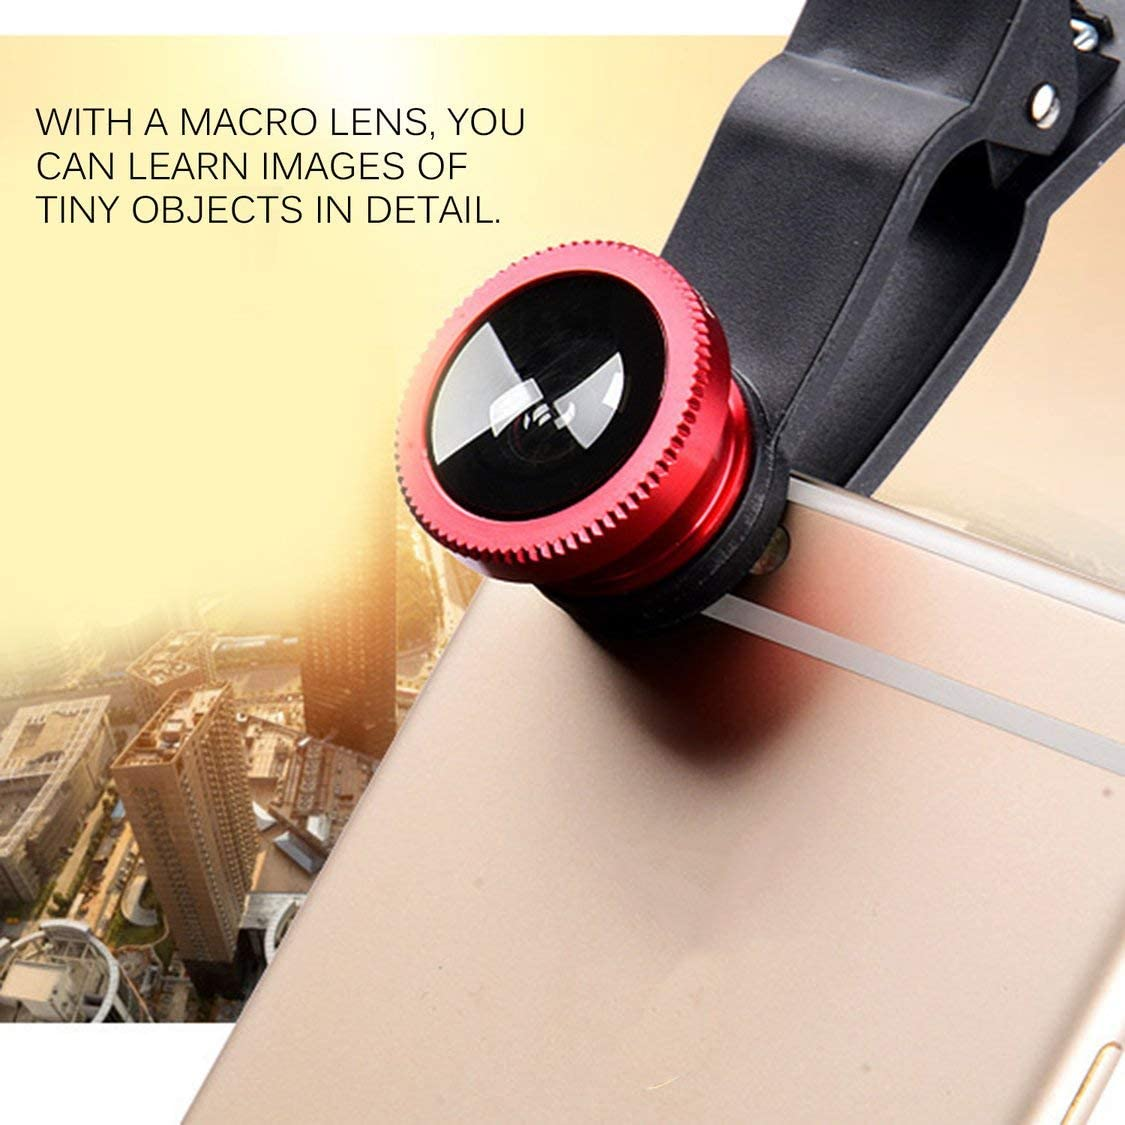 Black 【Majoxin】 Mobile Phone Camera Lens Kit Fish Eye Lens 2 in1 Macro Lens/& Super Wide Angle Lens with Black Universal Phone Clip